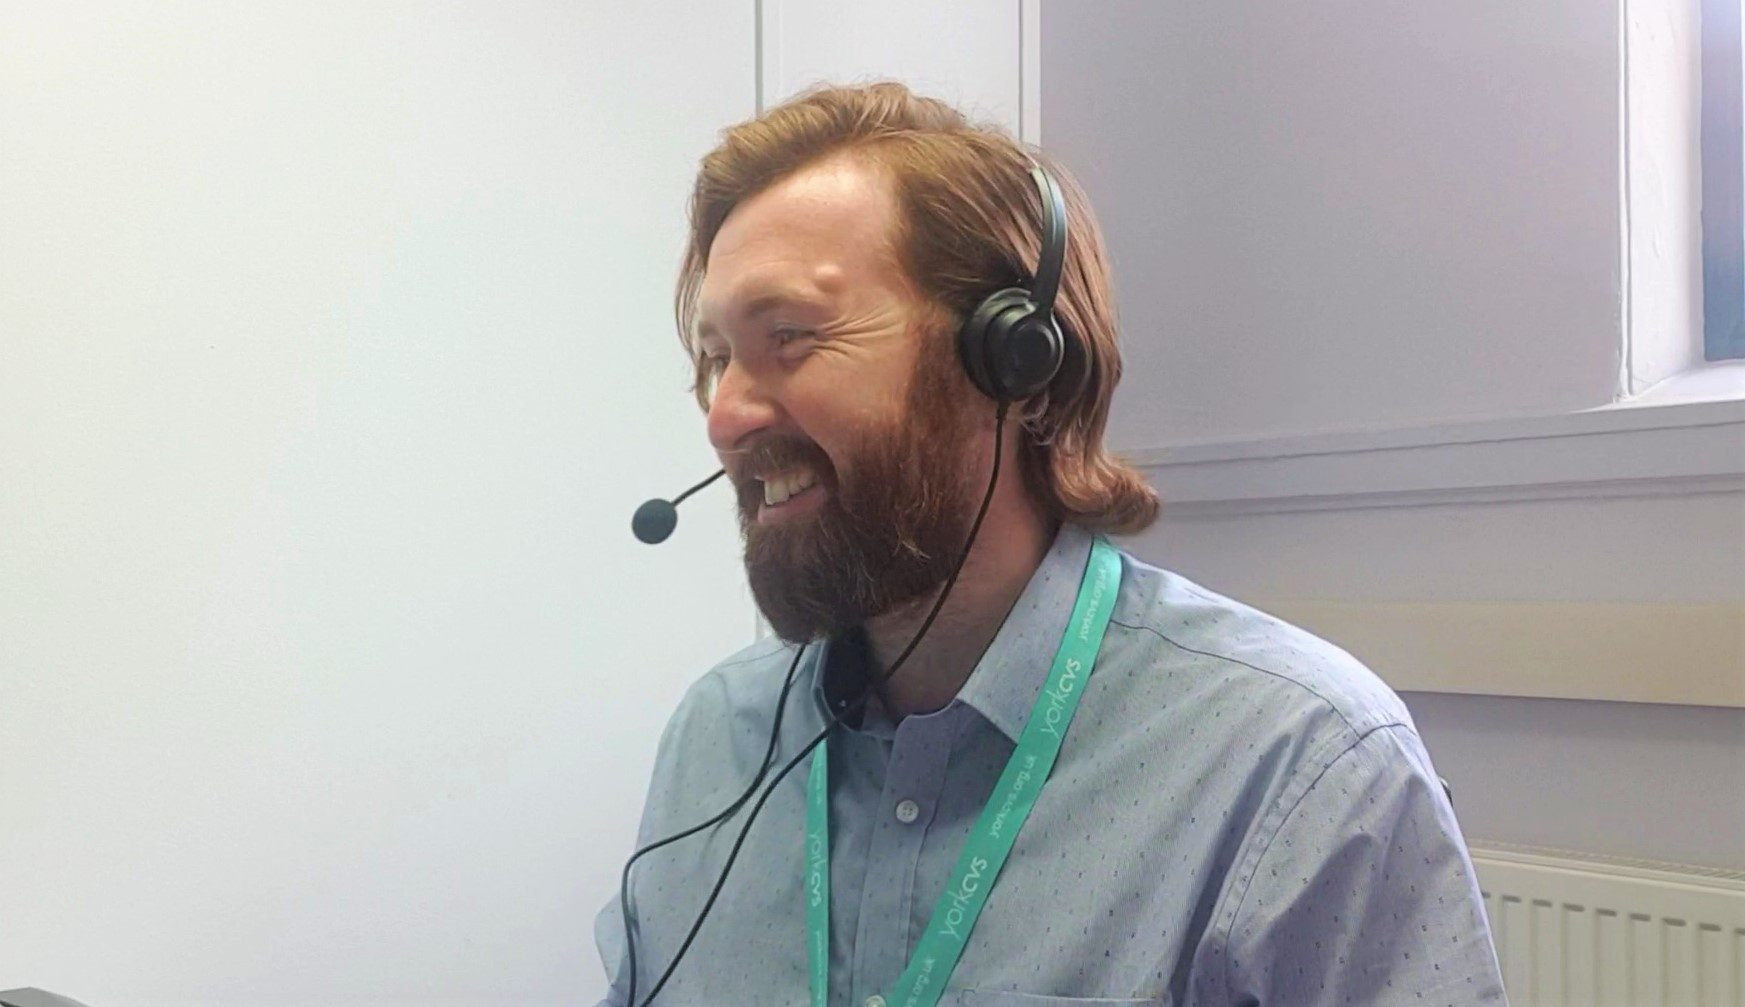 A photo of Drew Richardson (Volunteer Centre Manager at York CVS), a white man with medium length red hair and beard, in a blue shirt, wearing a York CVS lanyard, talks to someone over a computer headset.